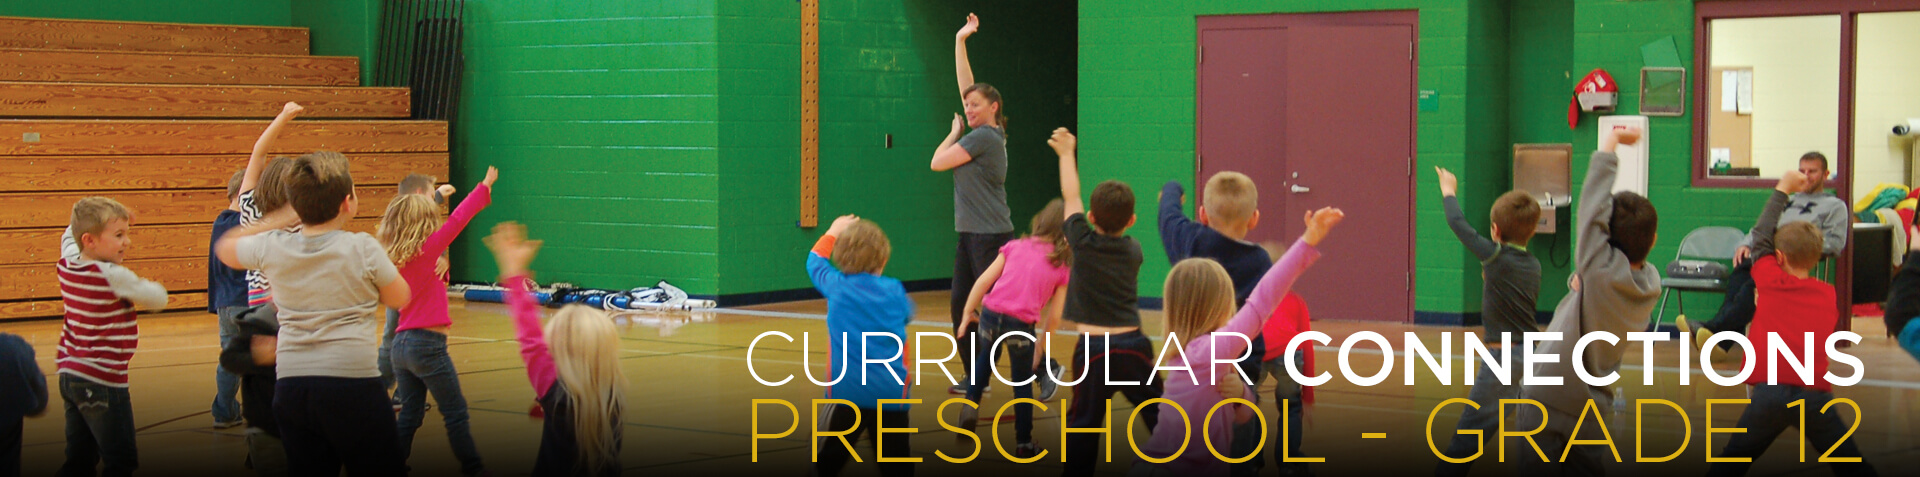 Curricular Connections Preschool through Grade 12. Image of young students on stage.